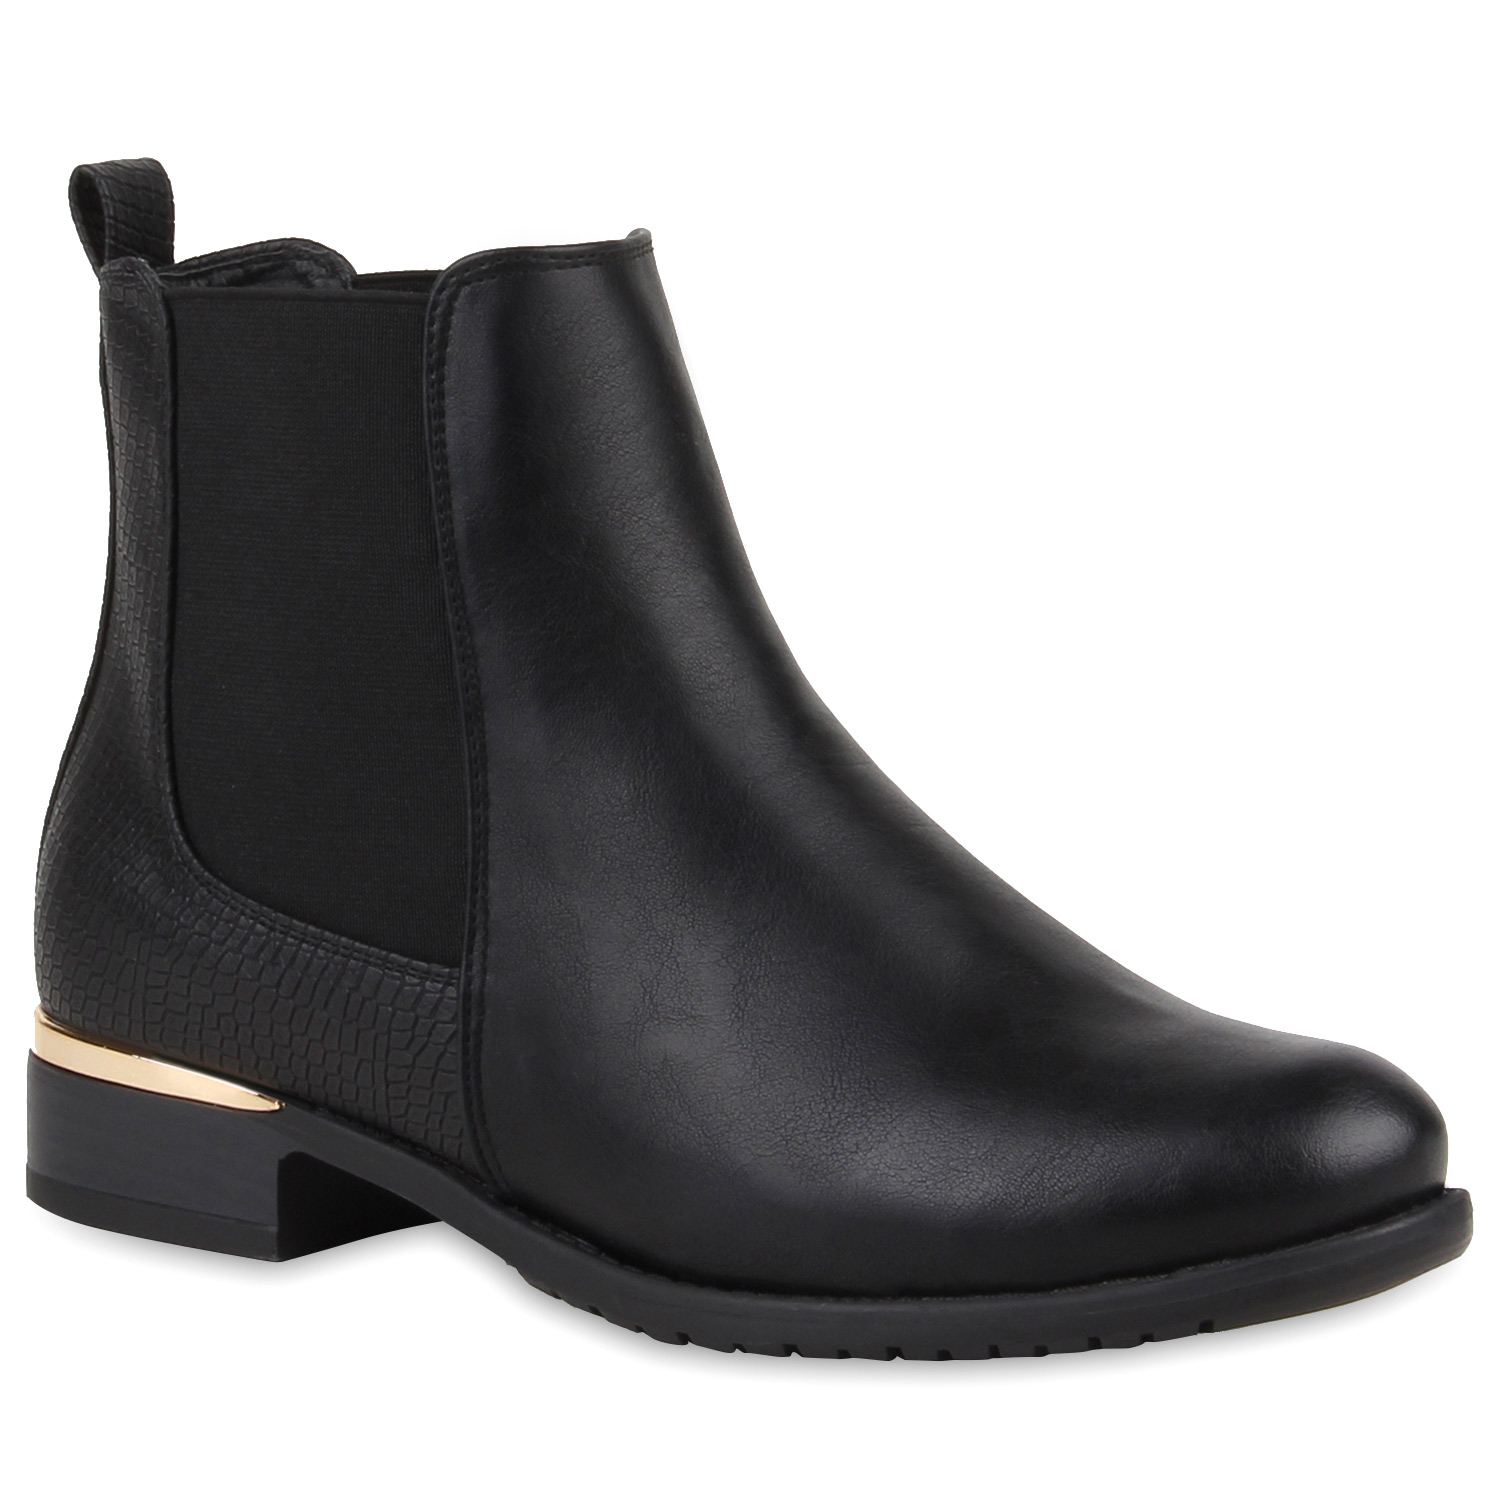 damen stiefeletten chelsea boots london style schuhe 77911 new look ebay. Black Bedroom Furniture Sets. Home Design Ideas